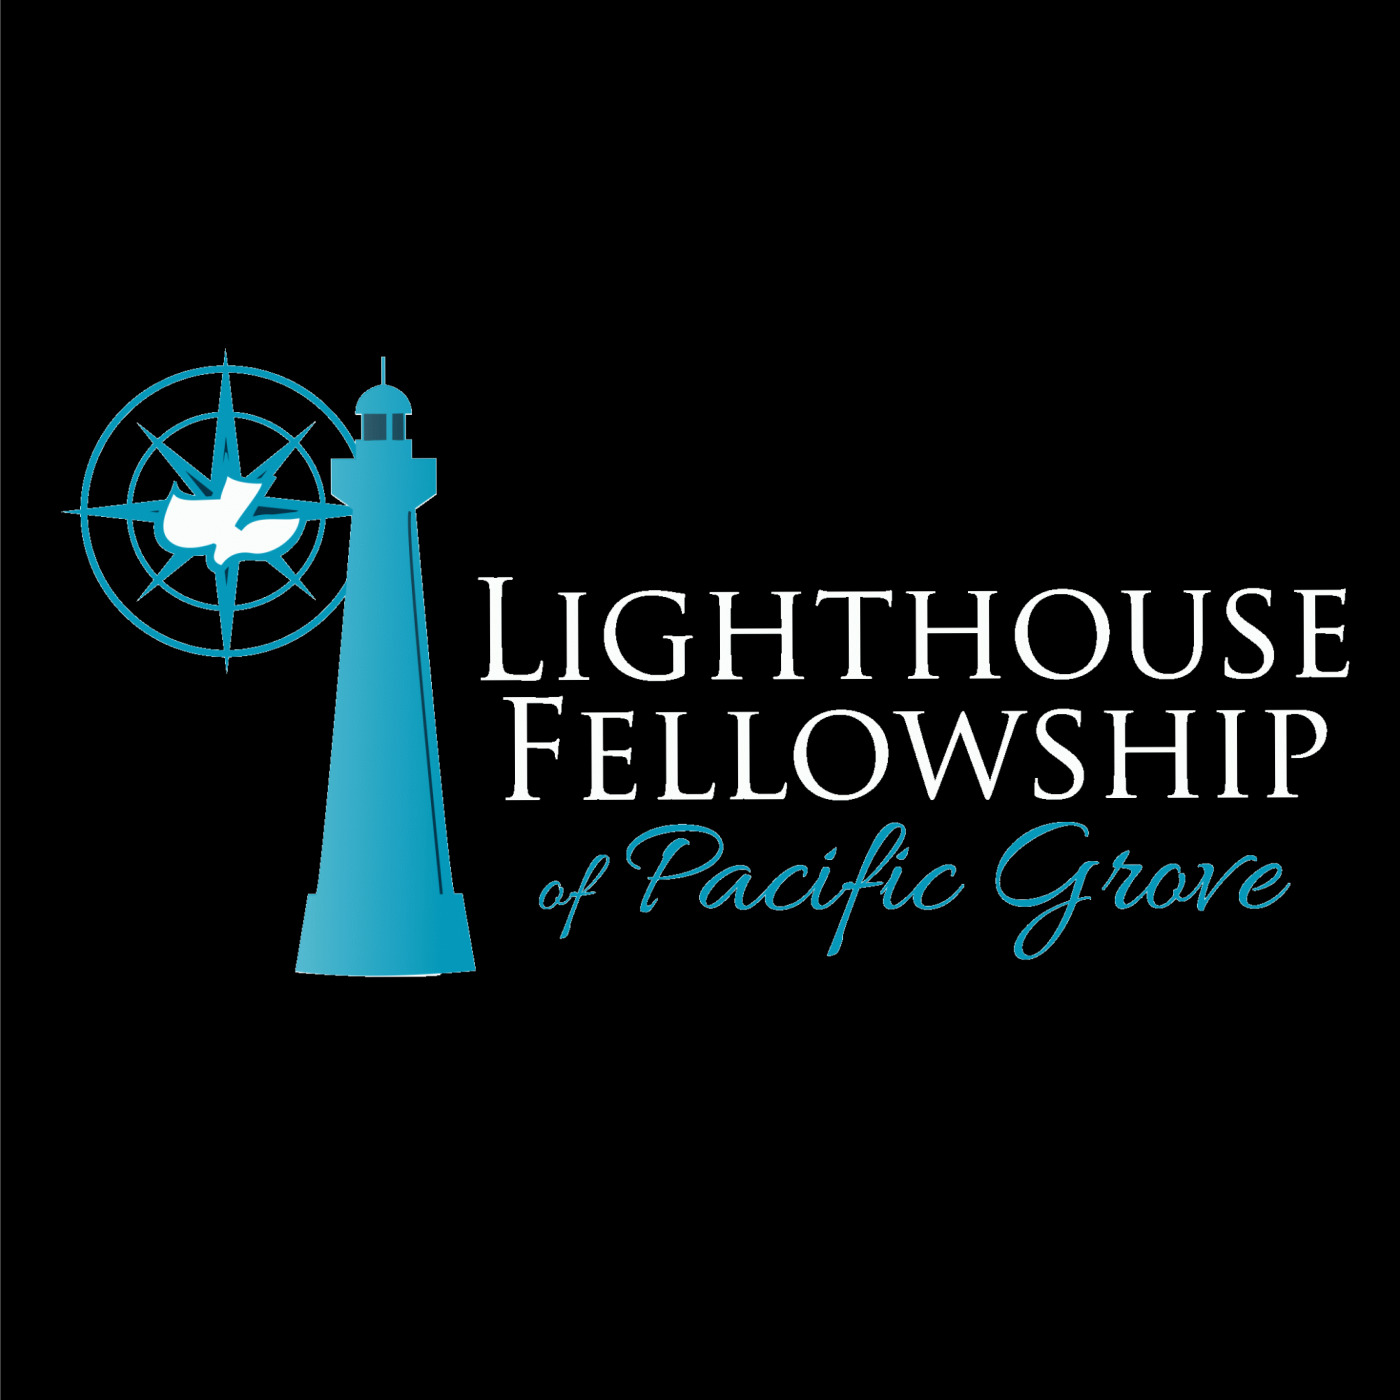 Lighthouse Fellowship of Pacific Grove